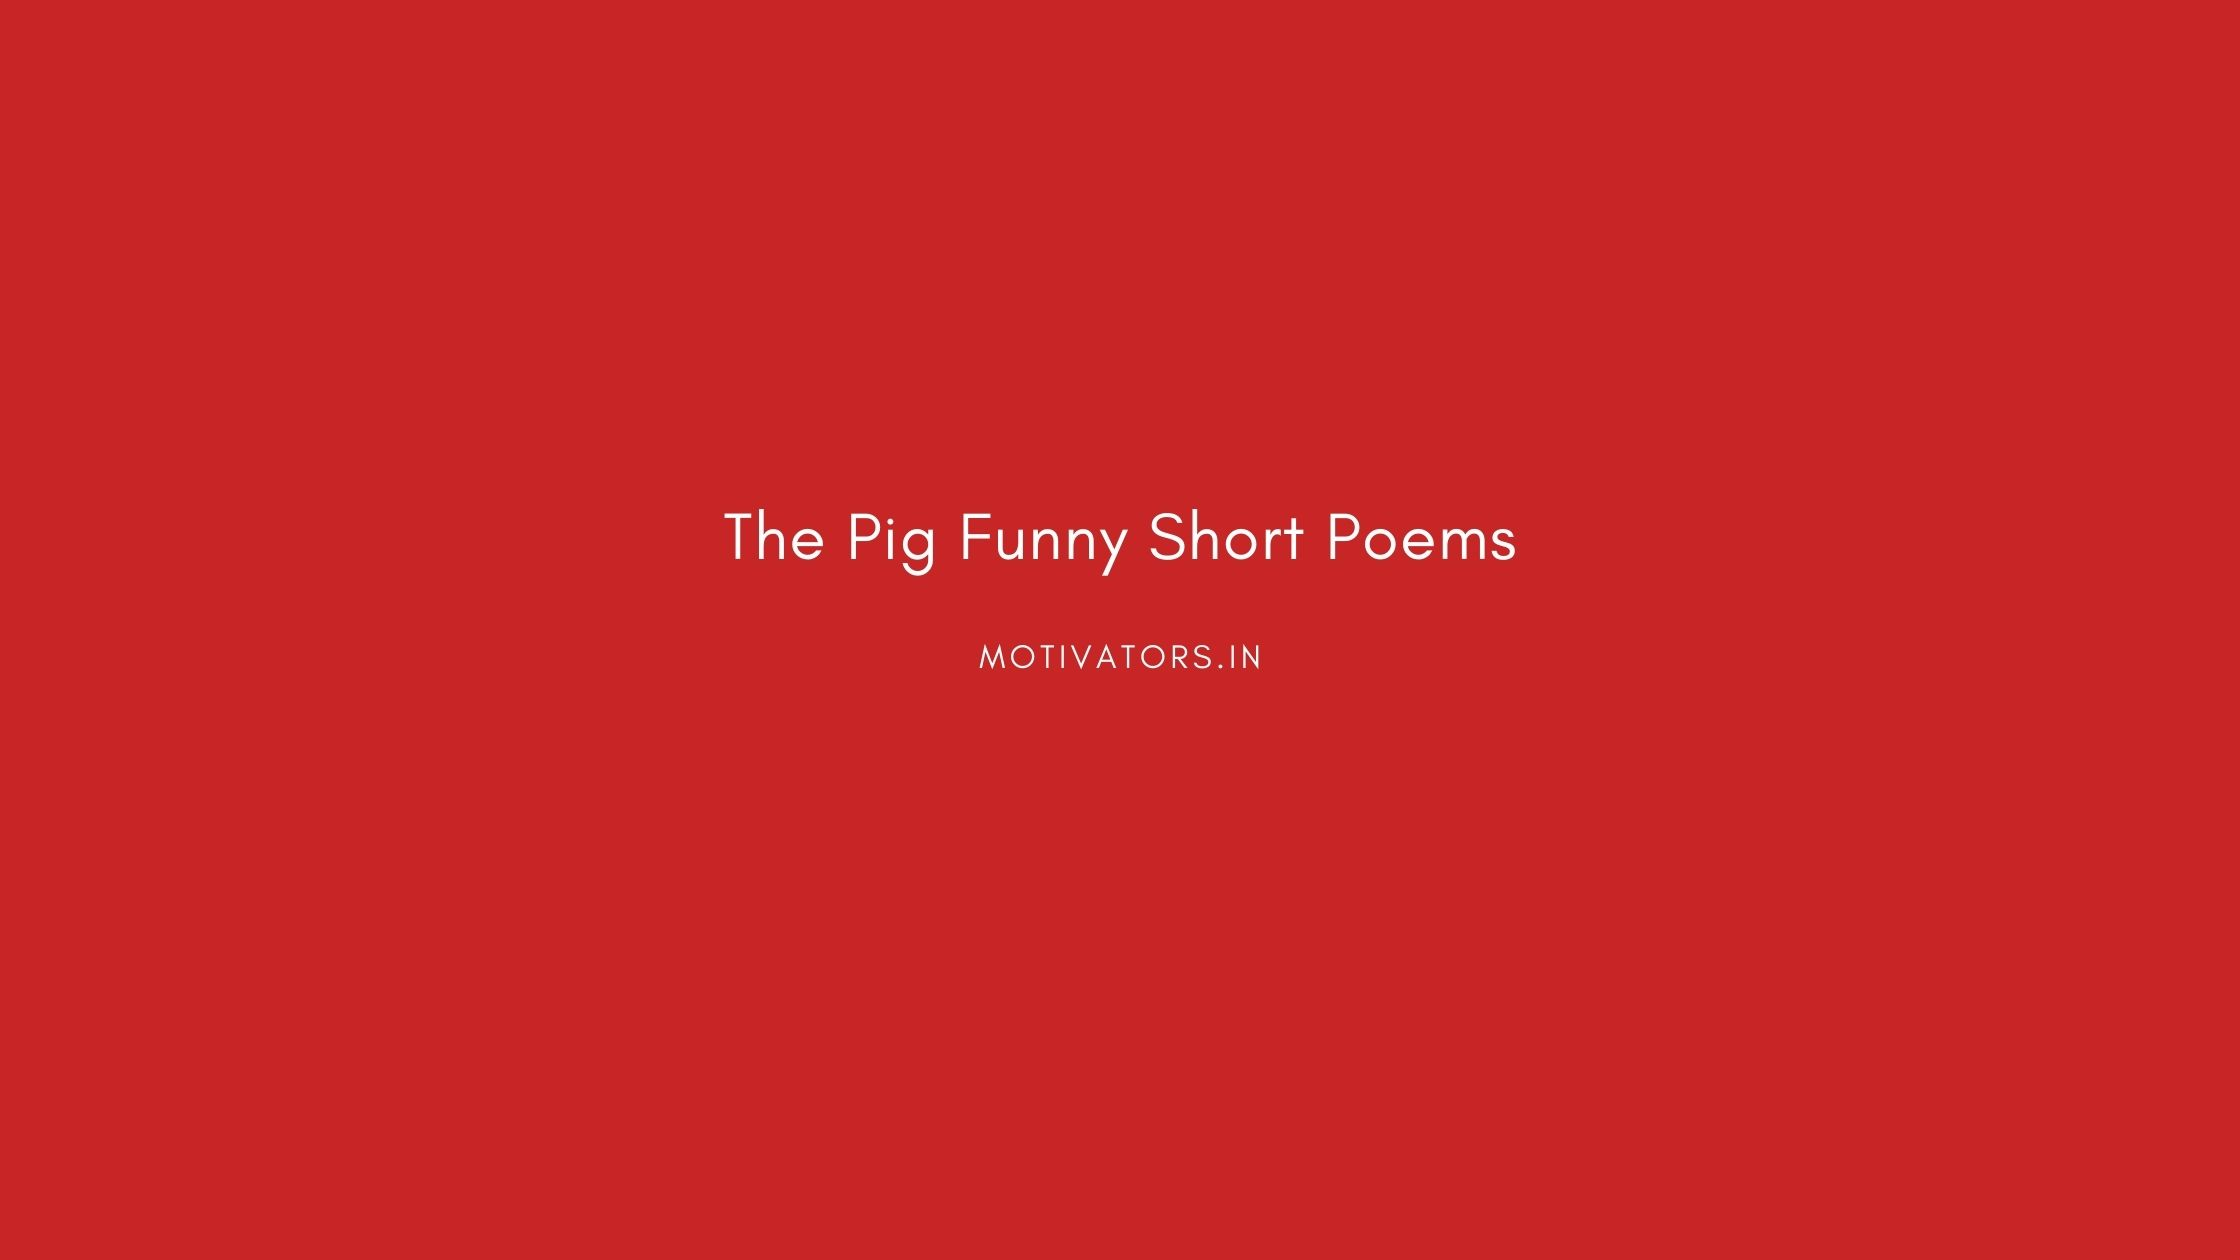 The Pig Funny Short Poems